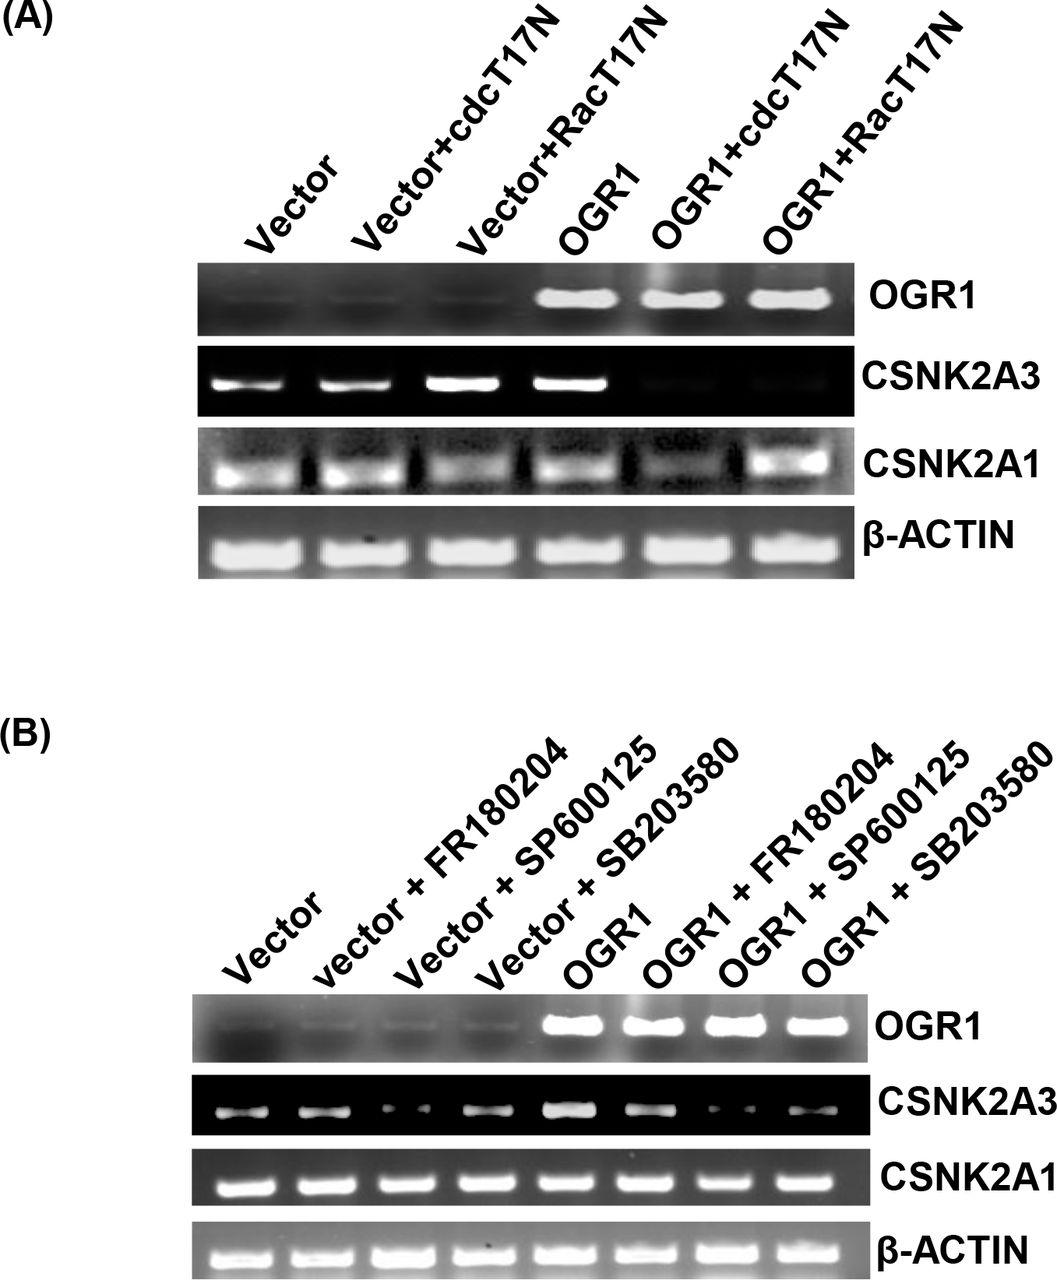 Role of Rac/CDC42 and MAPK pathways in regulation of CK2α genes induced by OGR1 (A) A549 cells were co-transfected with OGR1 or pcDNA3.1 (Vector) and negative dominant mutants of Rac (pcDNA3.1-RacT17N) or negative dominant mutants of CDC42 (pcDNA3.1-cdcT17N). Semiquantitative RT-PCR of was performed to analyse CSNK2A1 and CSNK2A3 transcript expression. β-actin was used as control for equal loading; Inhibition of Rac activity abrogated up-regulation of CSNK2A3 induced by OGR1 (B) A549 cells were also transfected with pDNA3.1-OGR1 or pcDNA3.1 (Vector) in presence of MAPK kinase inhibitors. Semi-quantitative RT-PCR of was performed to analyse CSNK2A1 and CSNK2A3 transcript expression. β-actin was used as control for equal loading; inhibition of JNK and p38 using specific inhibitors, SP600125 and SB2203580 respectively, abrogated the up-regulate of CSNK2A3 induced by OGR1 but not by inhibition of ERK (FR180204) whereas inhibition of ERK, JNK and p38 does not significantly affect the expression of CSNK2A1 in A549.